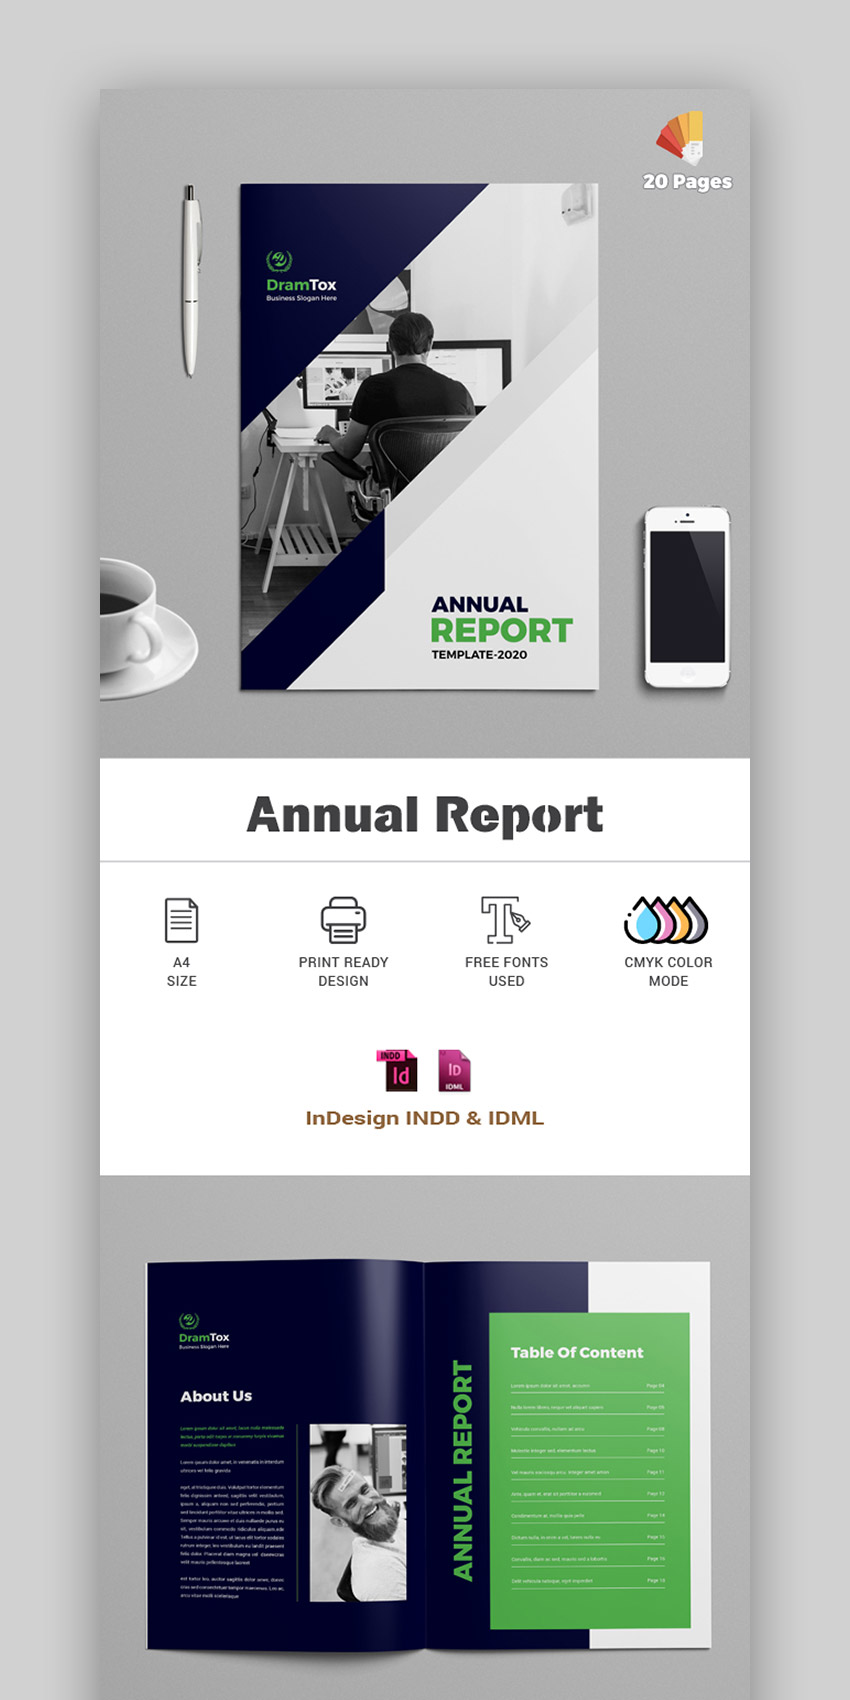 Annual Report Template 2020